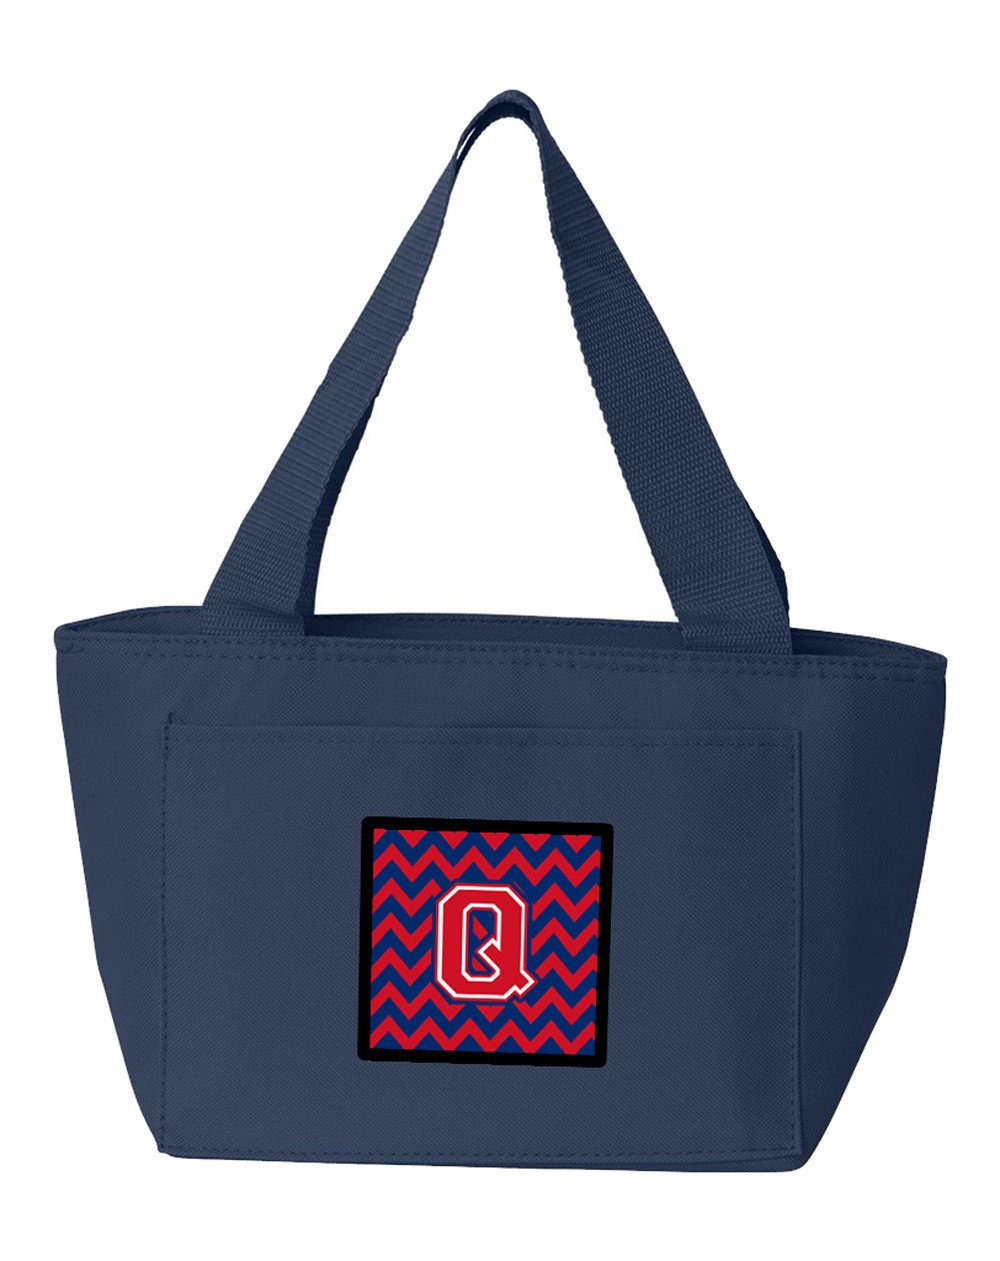 Letter Q Chevron Yale Blue and Crimson Lunch Bag CJ1054-QNA-8808 by Caroline's Treasures